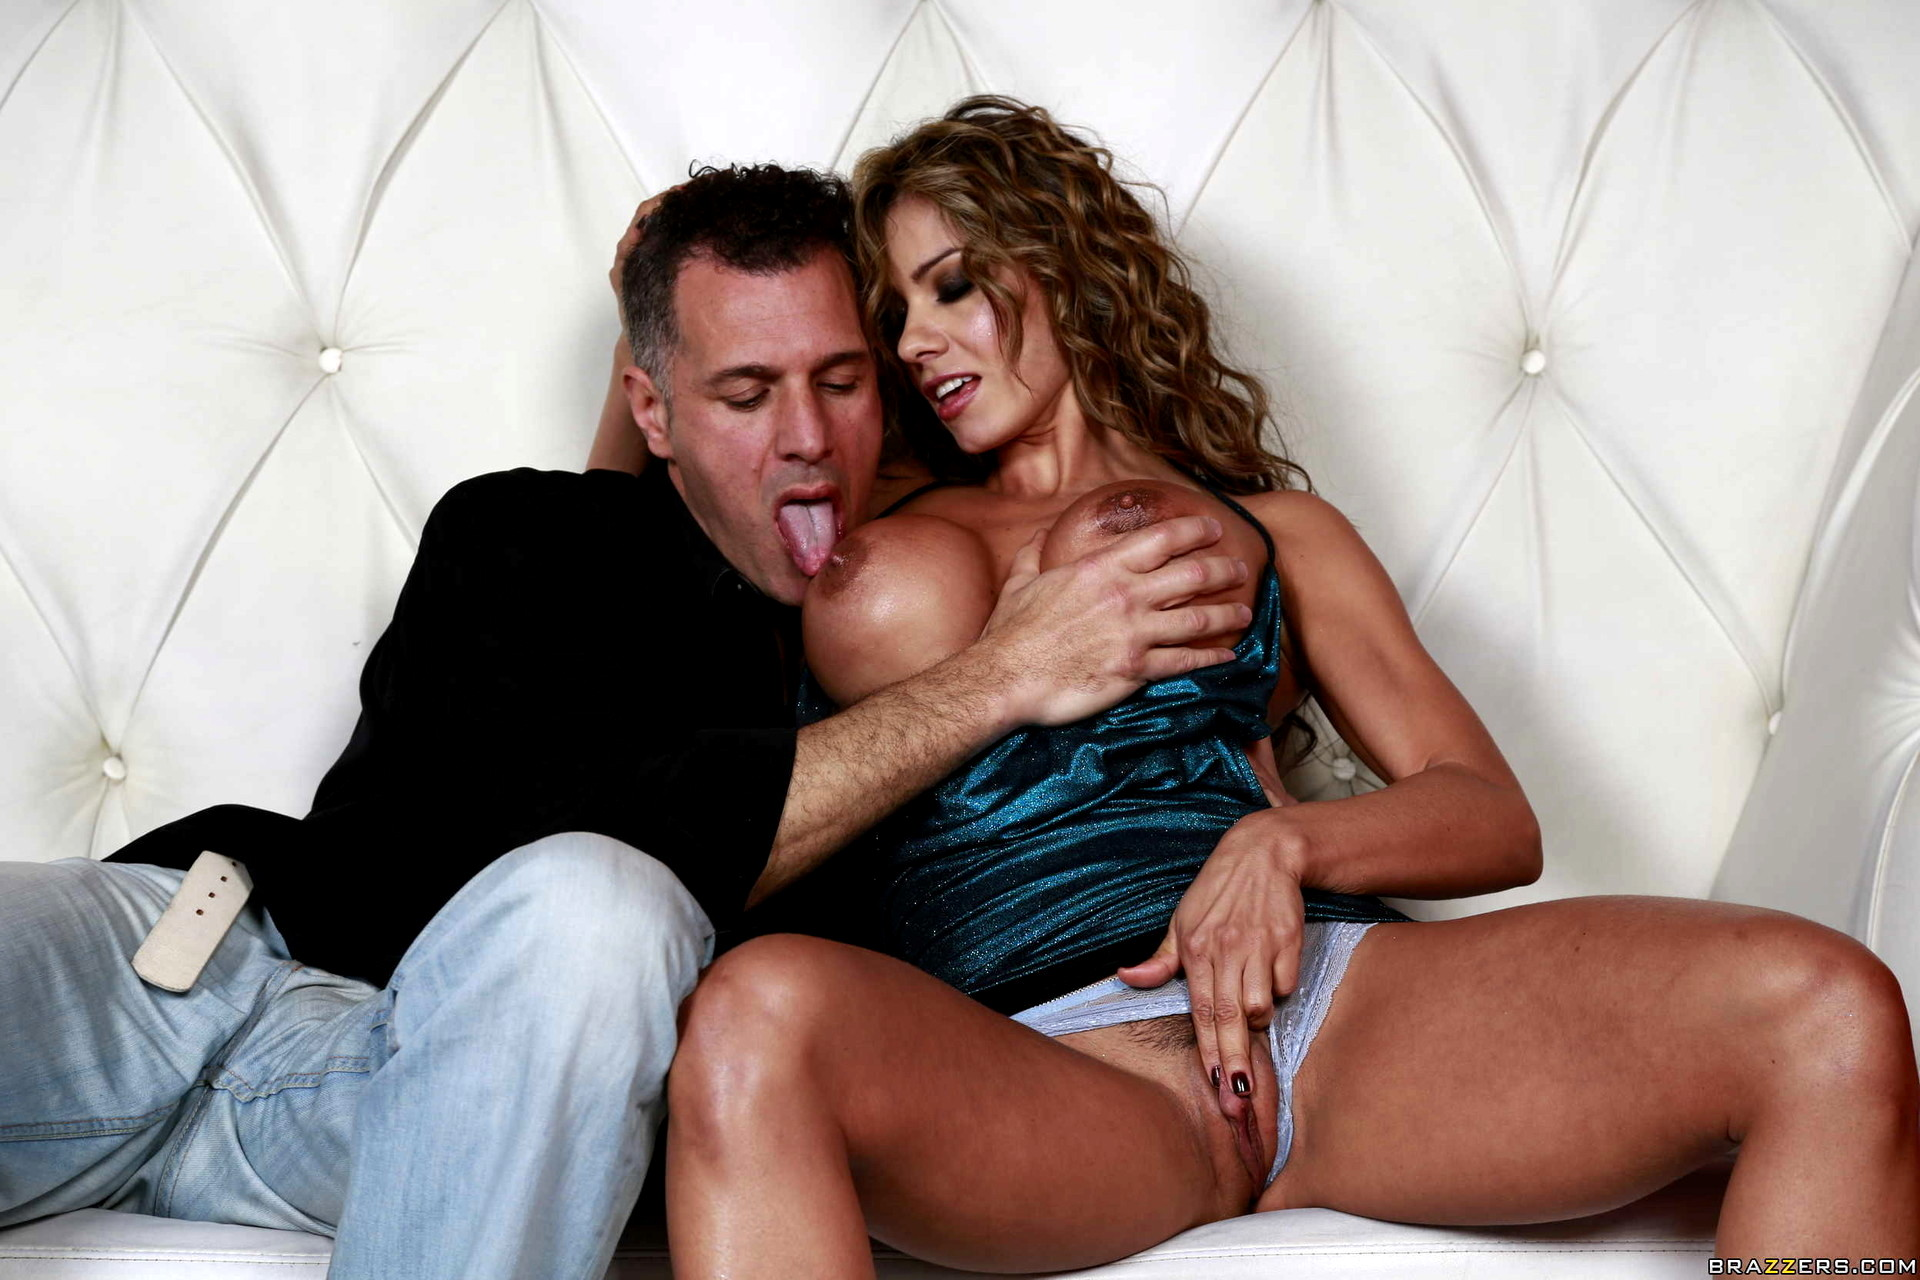 Brazzers cock crazed cougar pics free porn images